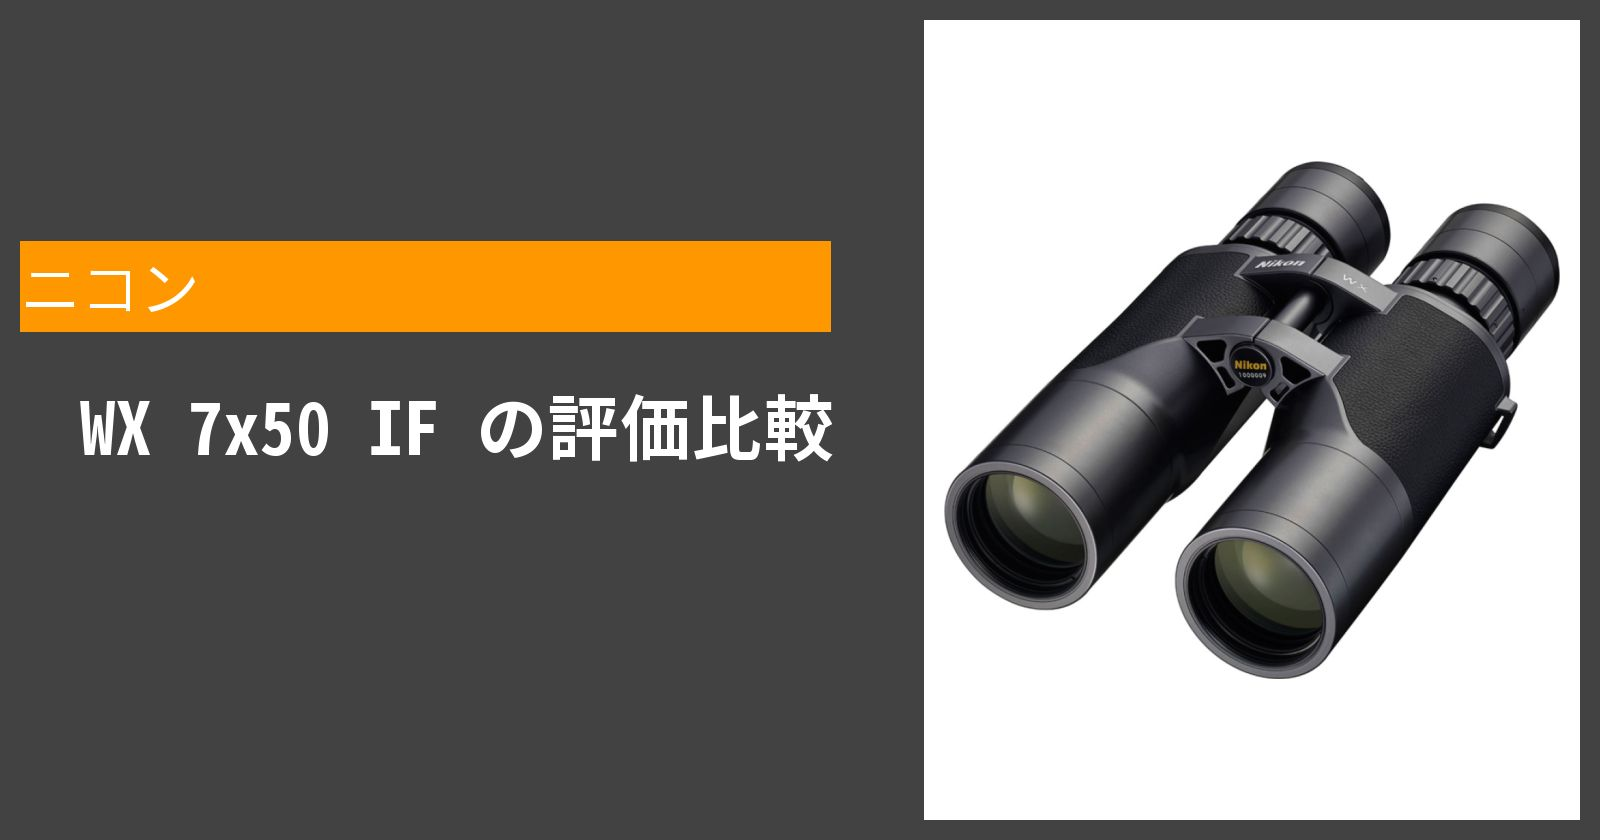 WX 7x50 IFを徹底評価